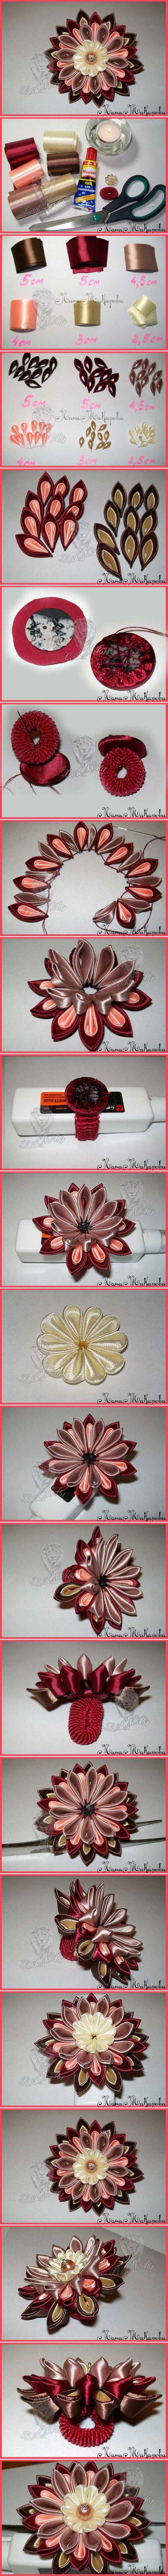 How to make Multi-Layer Ribbon Flower step by step DIY tutorial instructions